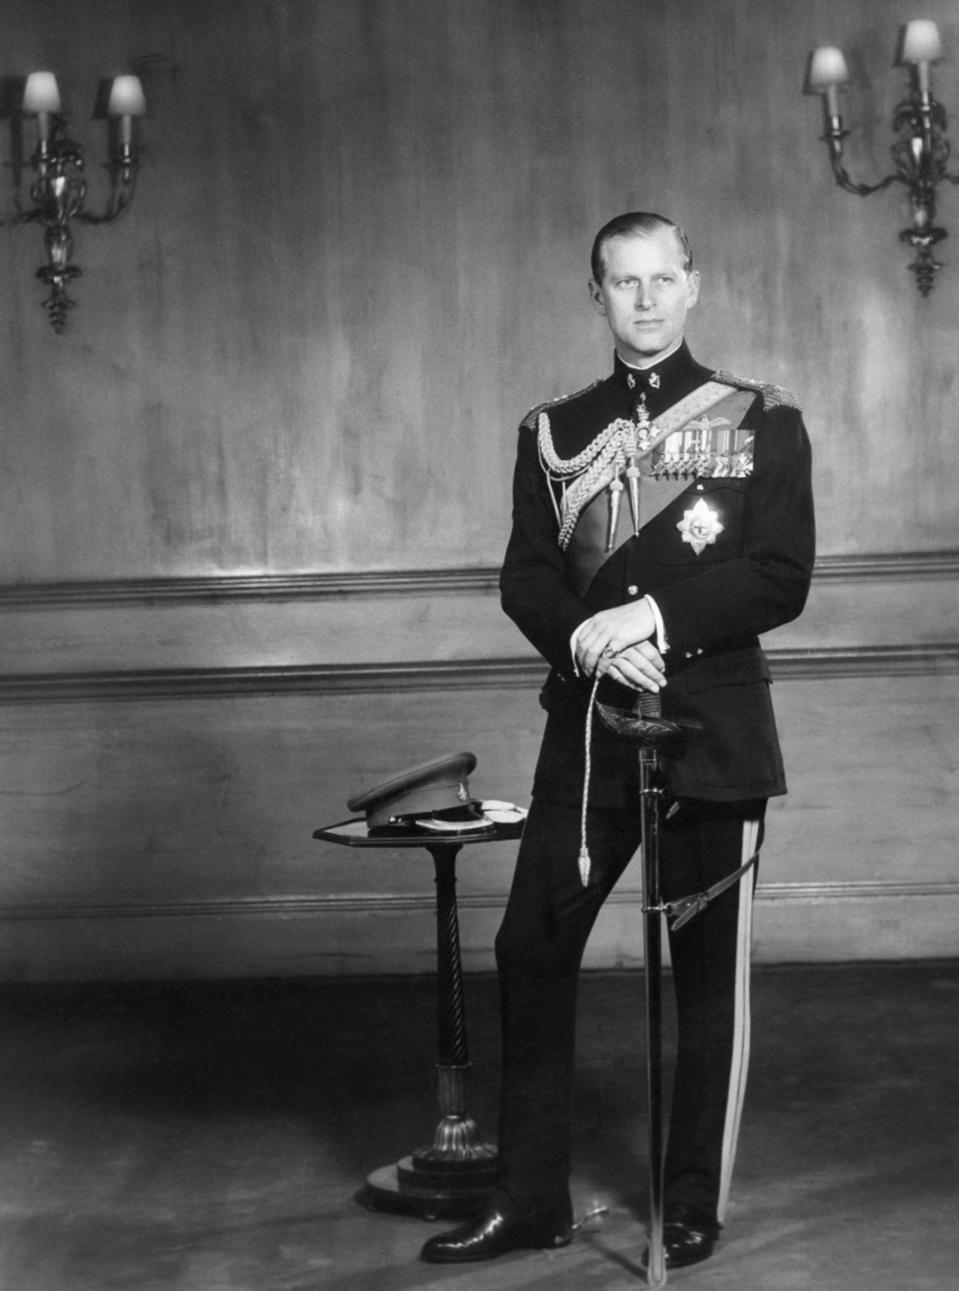 FILE - In this June 10, 1956 file photo, the Duke of Edinburgh poses for a photo as he observes his 35th birthday anniversary in Buckingham Palace, London. Buckingham Palace says Prince Philip, husband of Queen Elizabeth II, has died aged 99. (AP Photo/File)